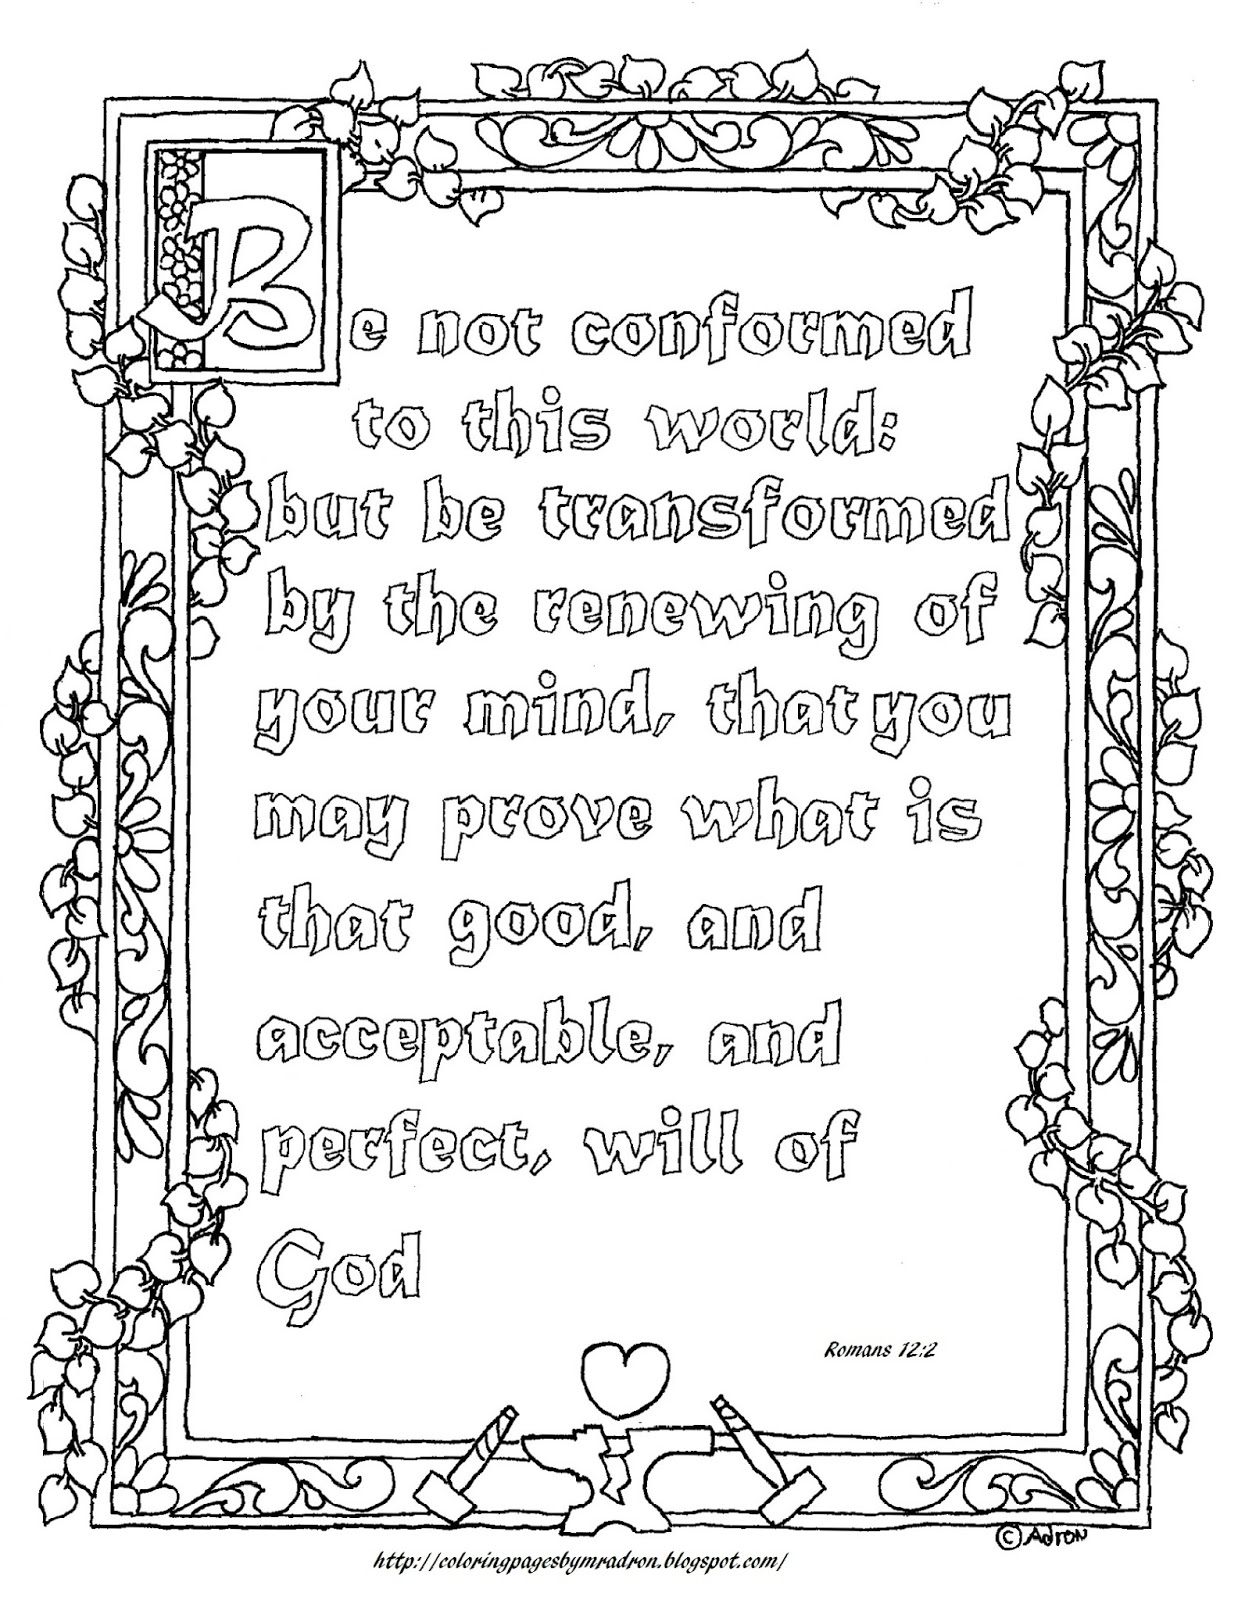 Coloring Pages For Kids By Mr Adron Free Printable Romans 12 2 Coloring Page For Be Not